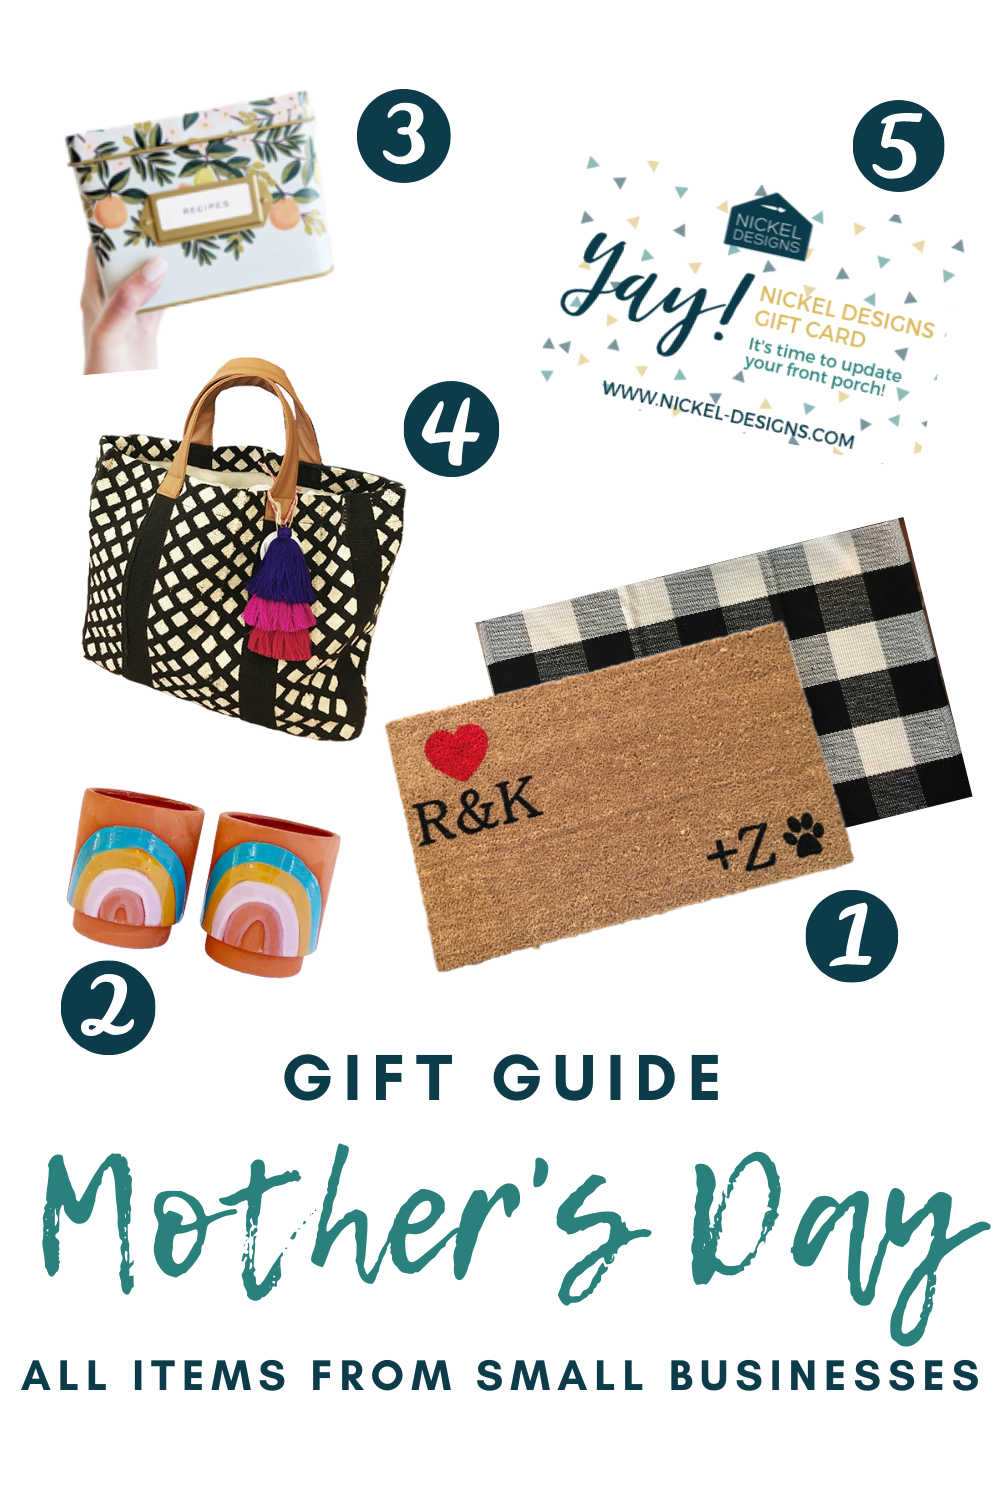 Shop Small! Small Business Mother's Day Gift Guide